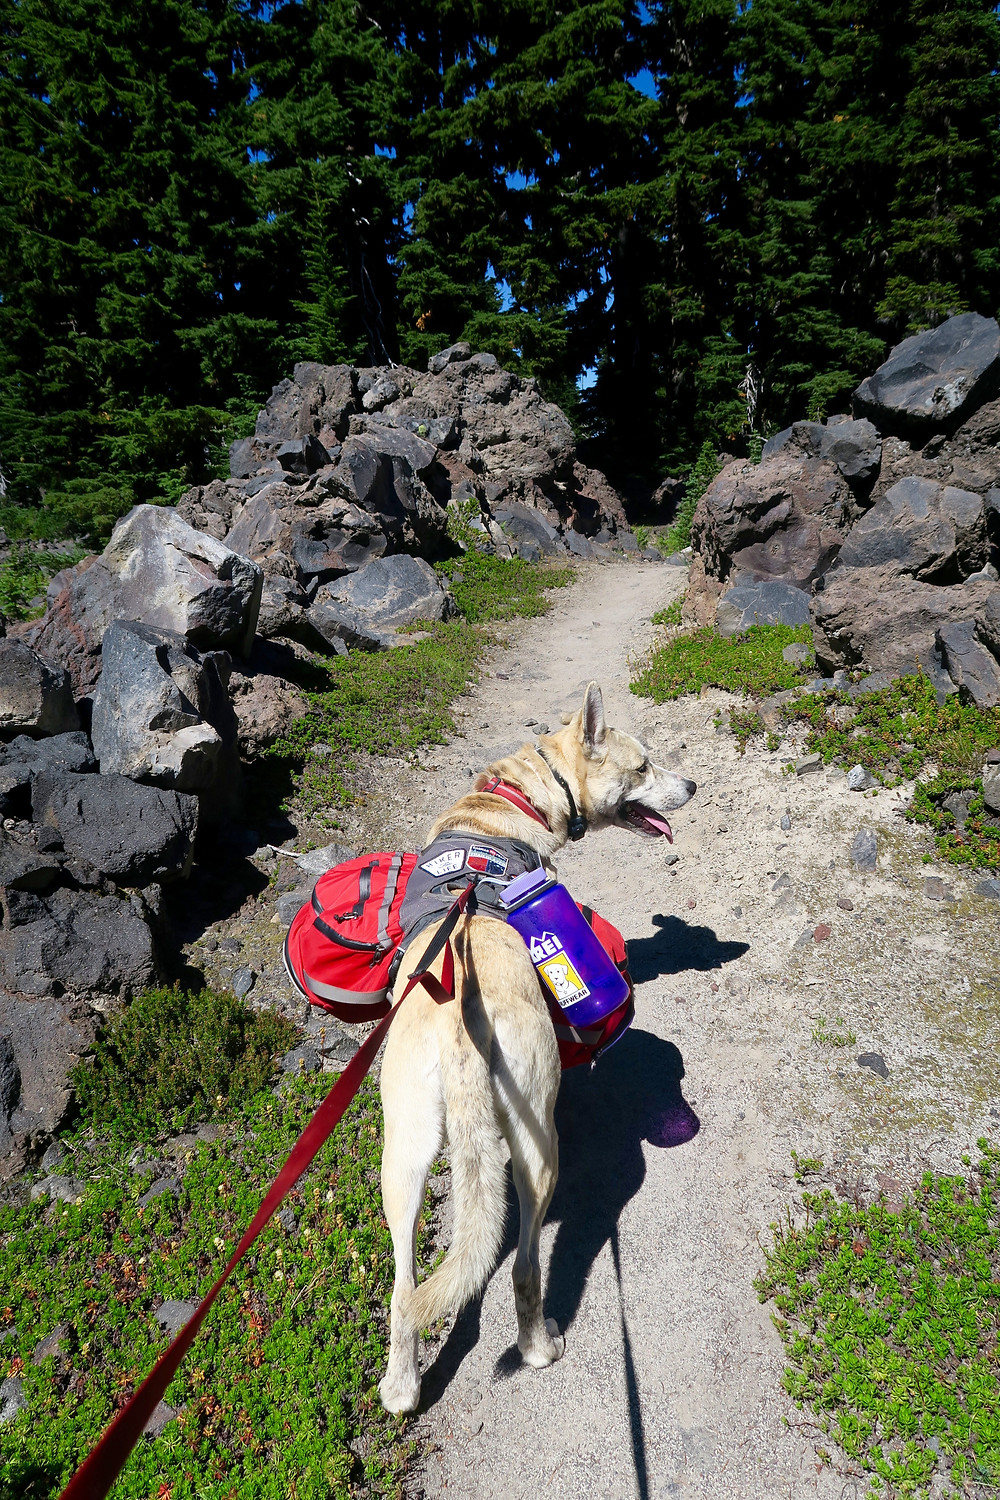 A dog wearing a pack stands on a sandy trail surrounded by lava rock boulders and pine trees